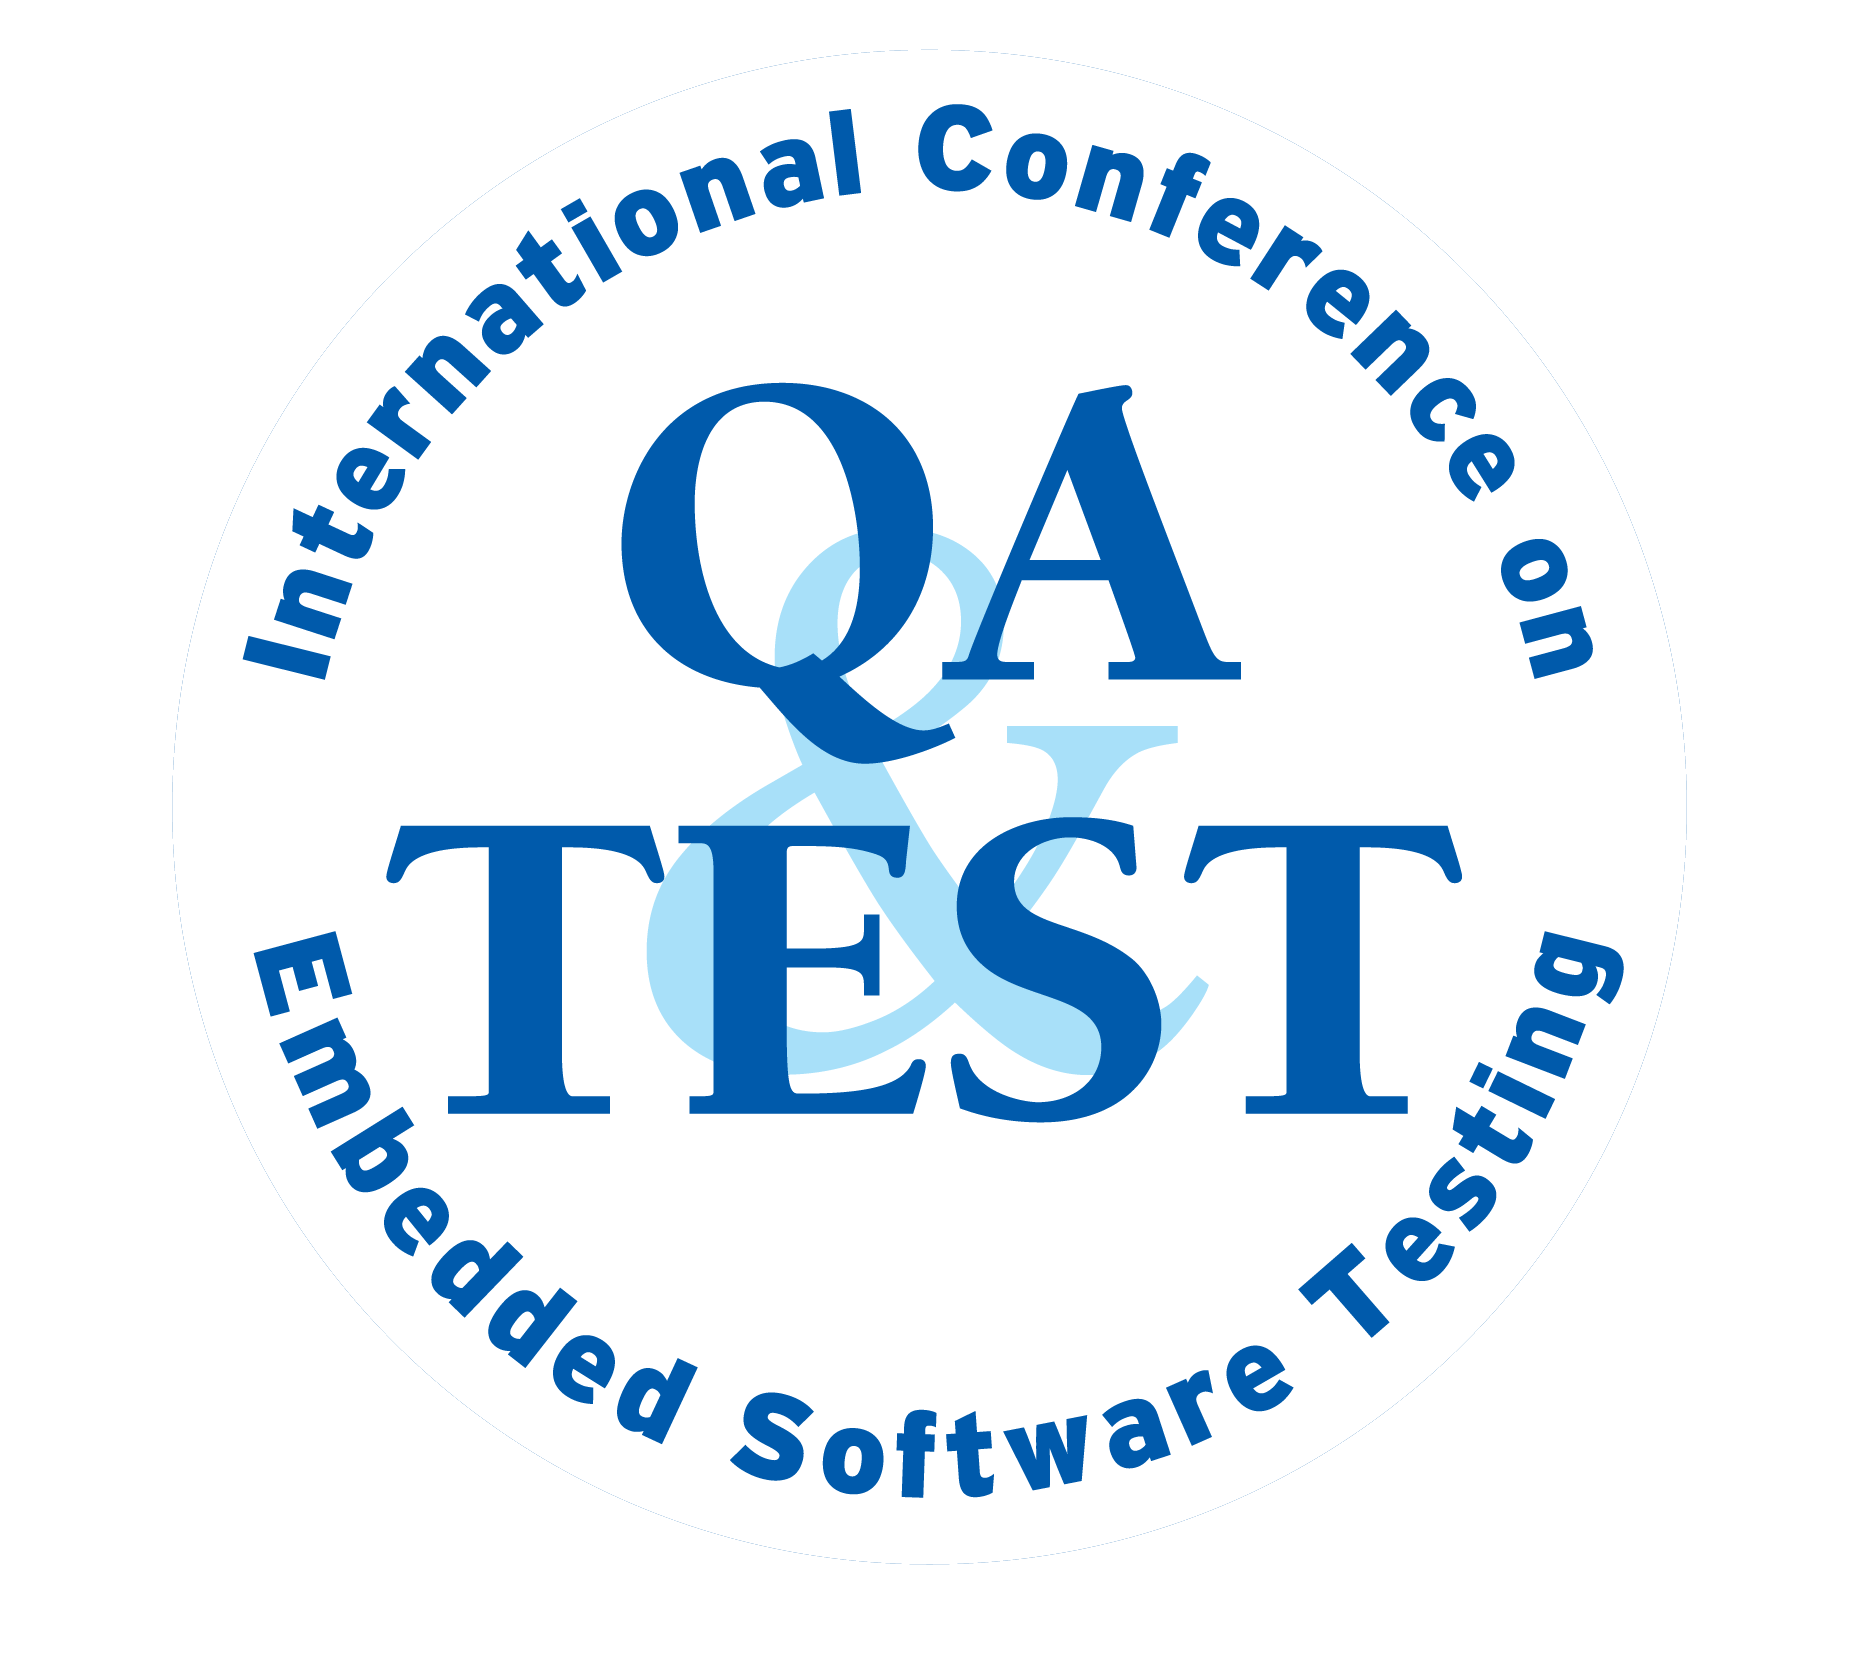 QA&TEST | Conferences on embedded and complex system testing